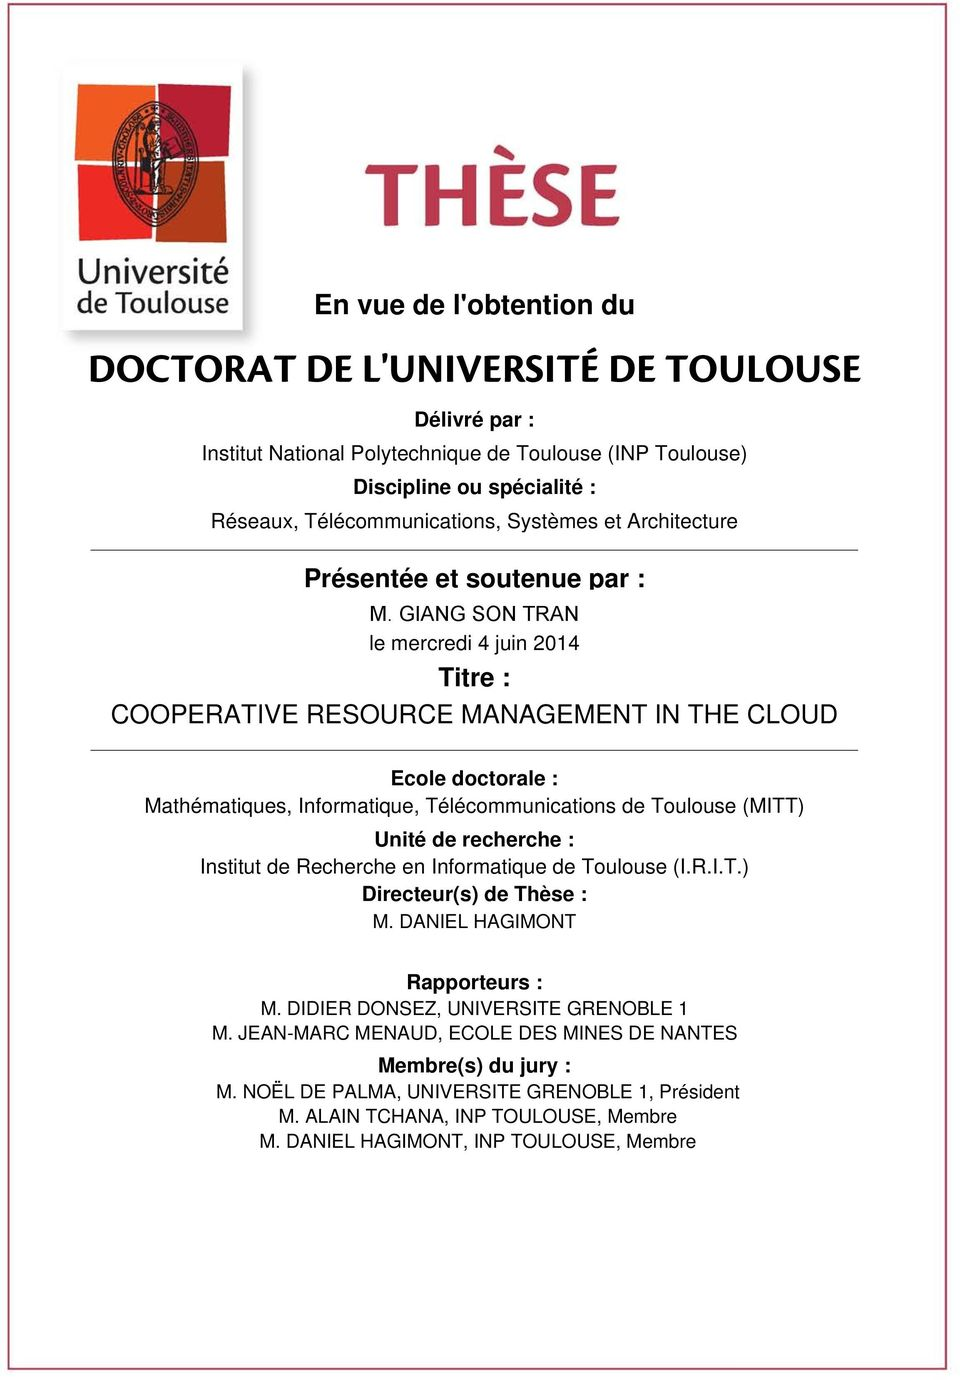 GIANG SON TRAN le mercredi 4 juin 2014 Titre : COOPERATIVE RESOURCE MANAGEMENT IN THE CLOUD Ecole doctorale : Mathématiques, Informatique, Télécommunications de Toulouse (MITT) Unité de recherche :